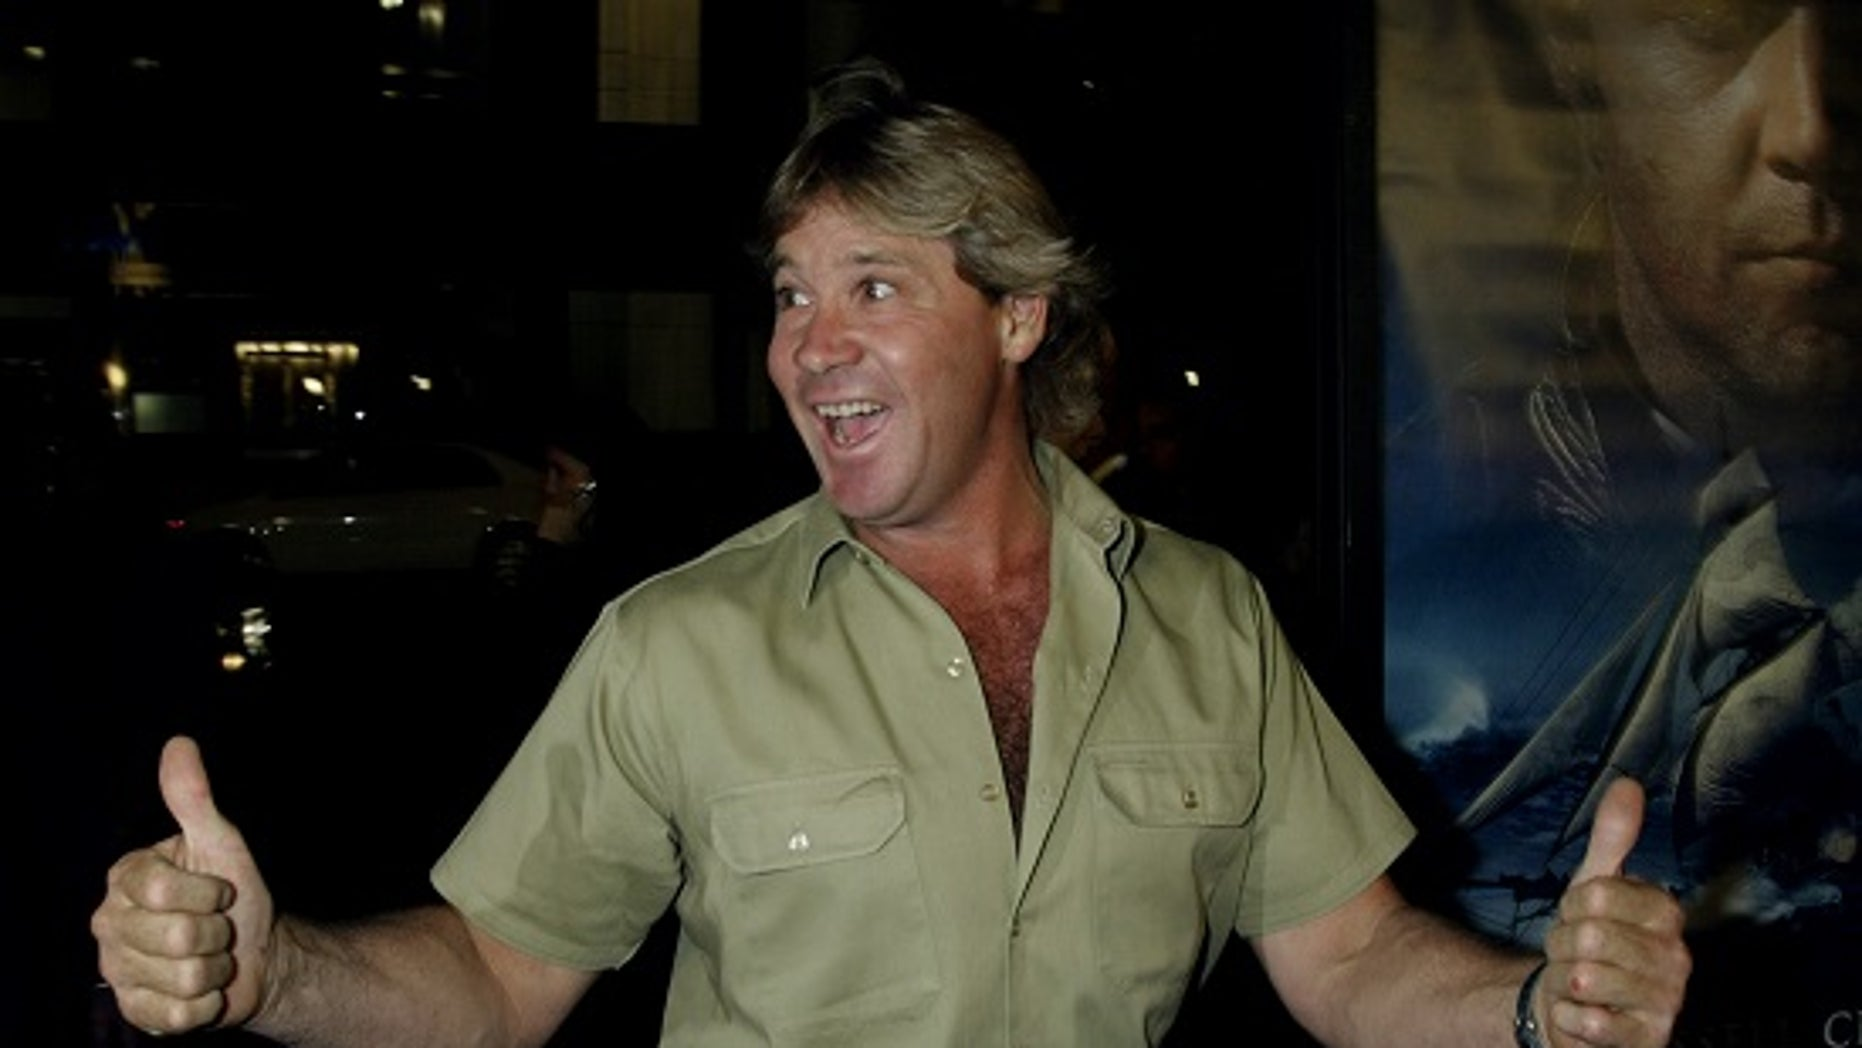 Australian environmentalist, Steve Irwin, will be posthumously honored with a star on the Hollywood Walk of Fame in 2018.